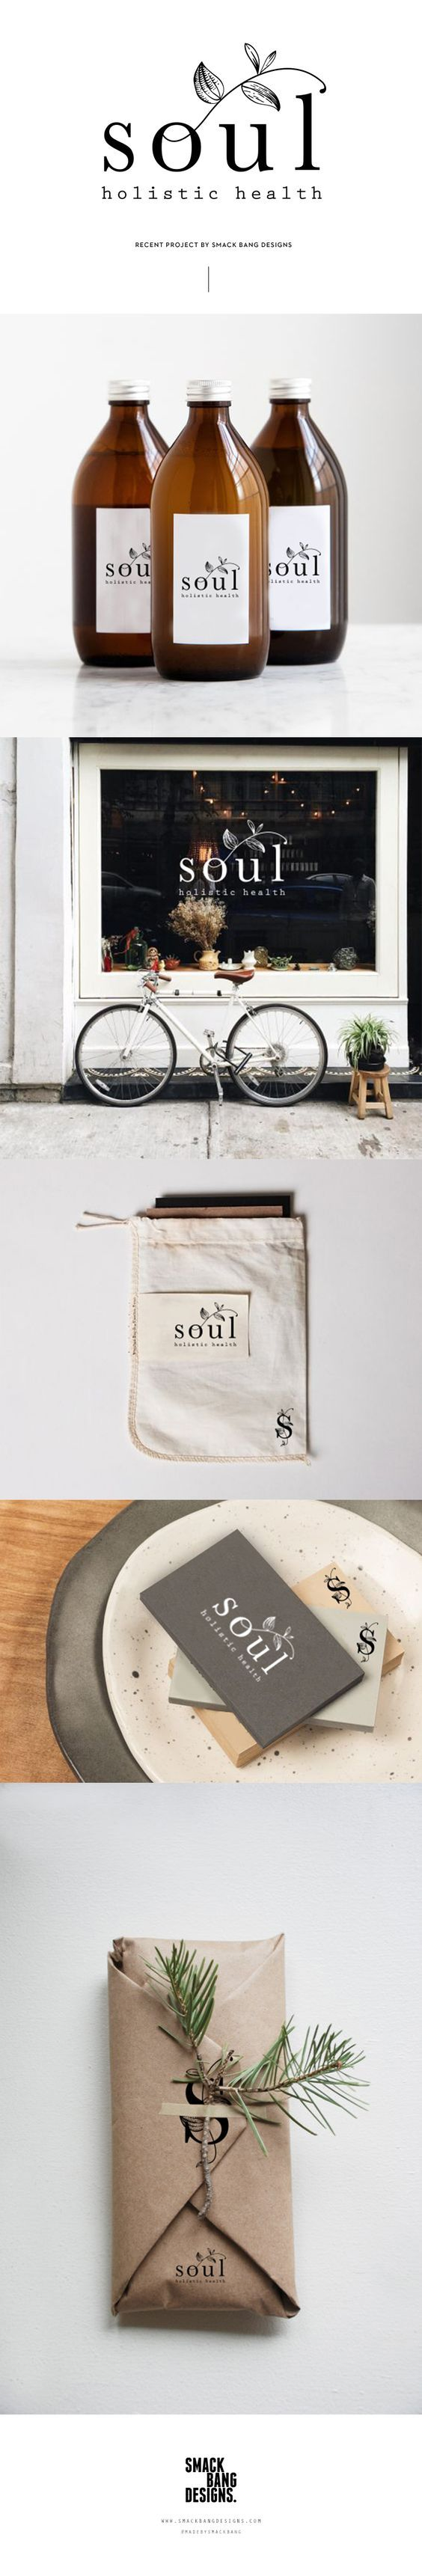 Soul Holistic Health Branding by Smack Bang Designs | Fivestar Branding Agency – Design and Branding Agency & Curated Inspiration Gallery #design #designinspiration #logo #logoinspirations #branding #brand #brandidentity